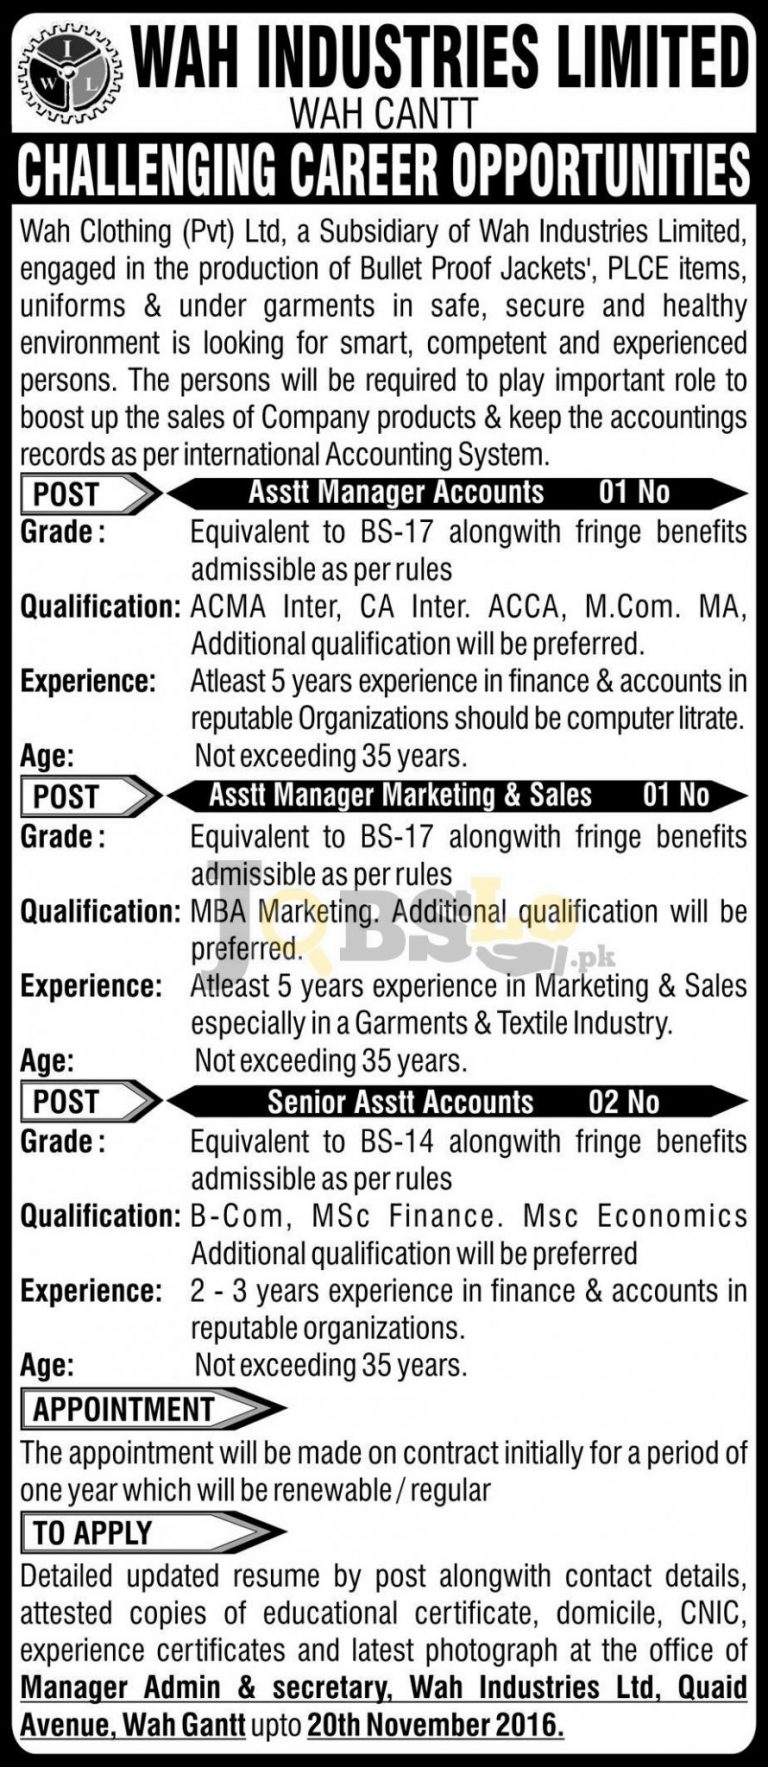 Wah Industries Limited Wah Cantt Jobs Nov 2016 Current Career Opportunities